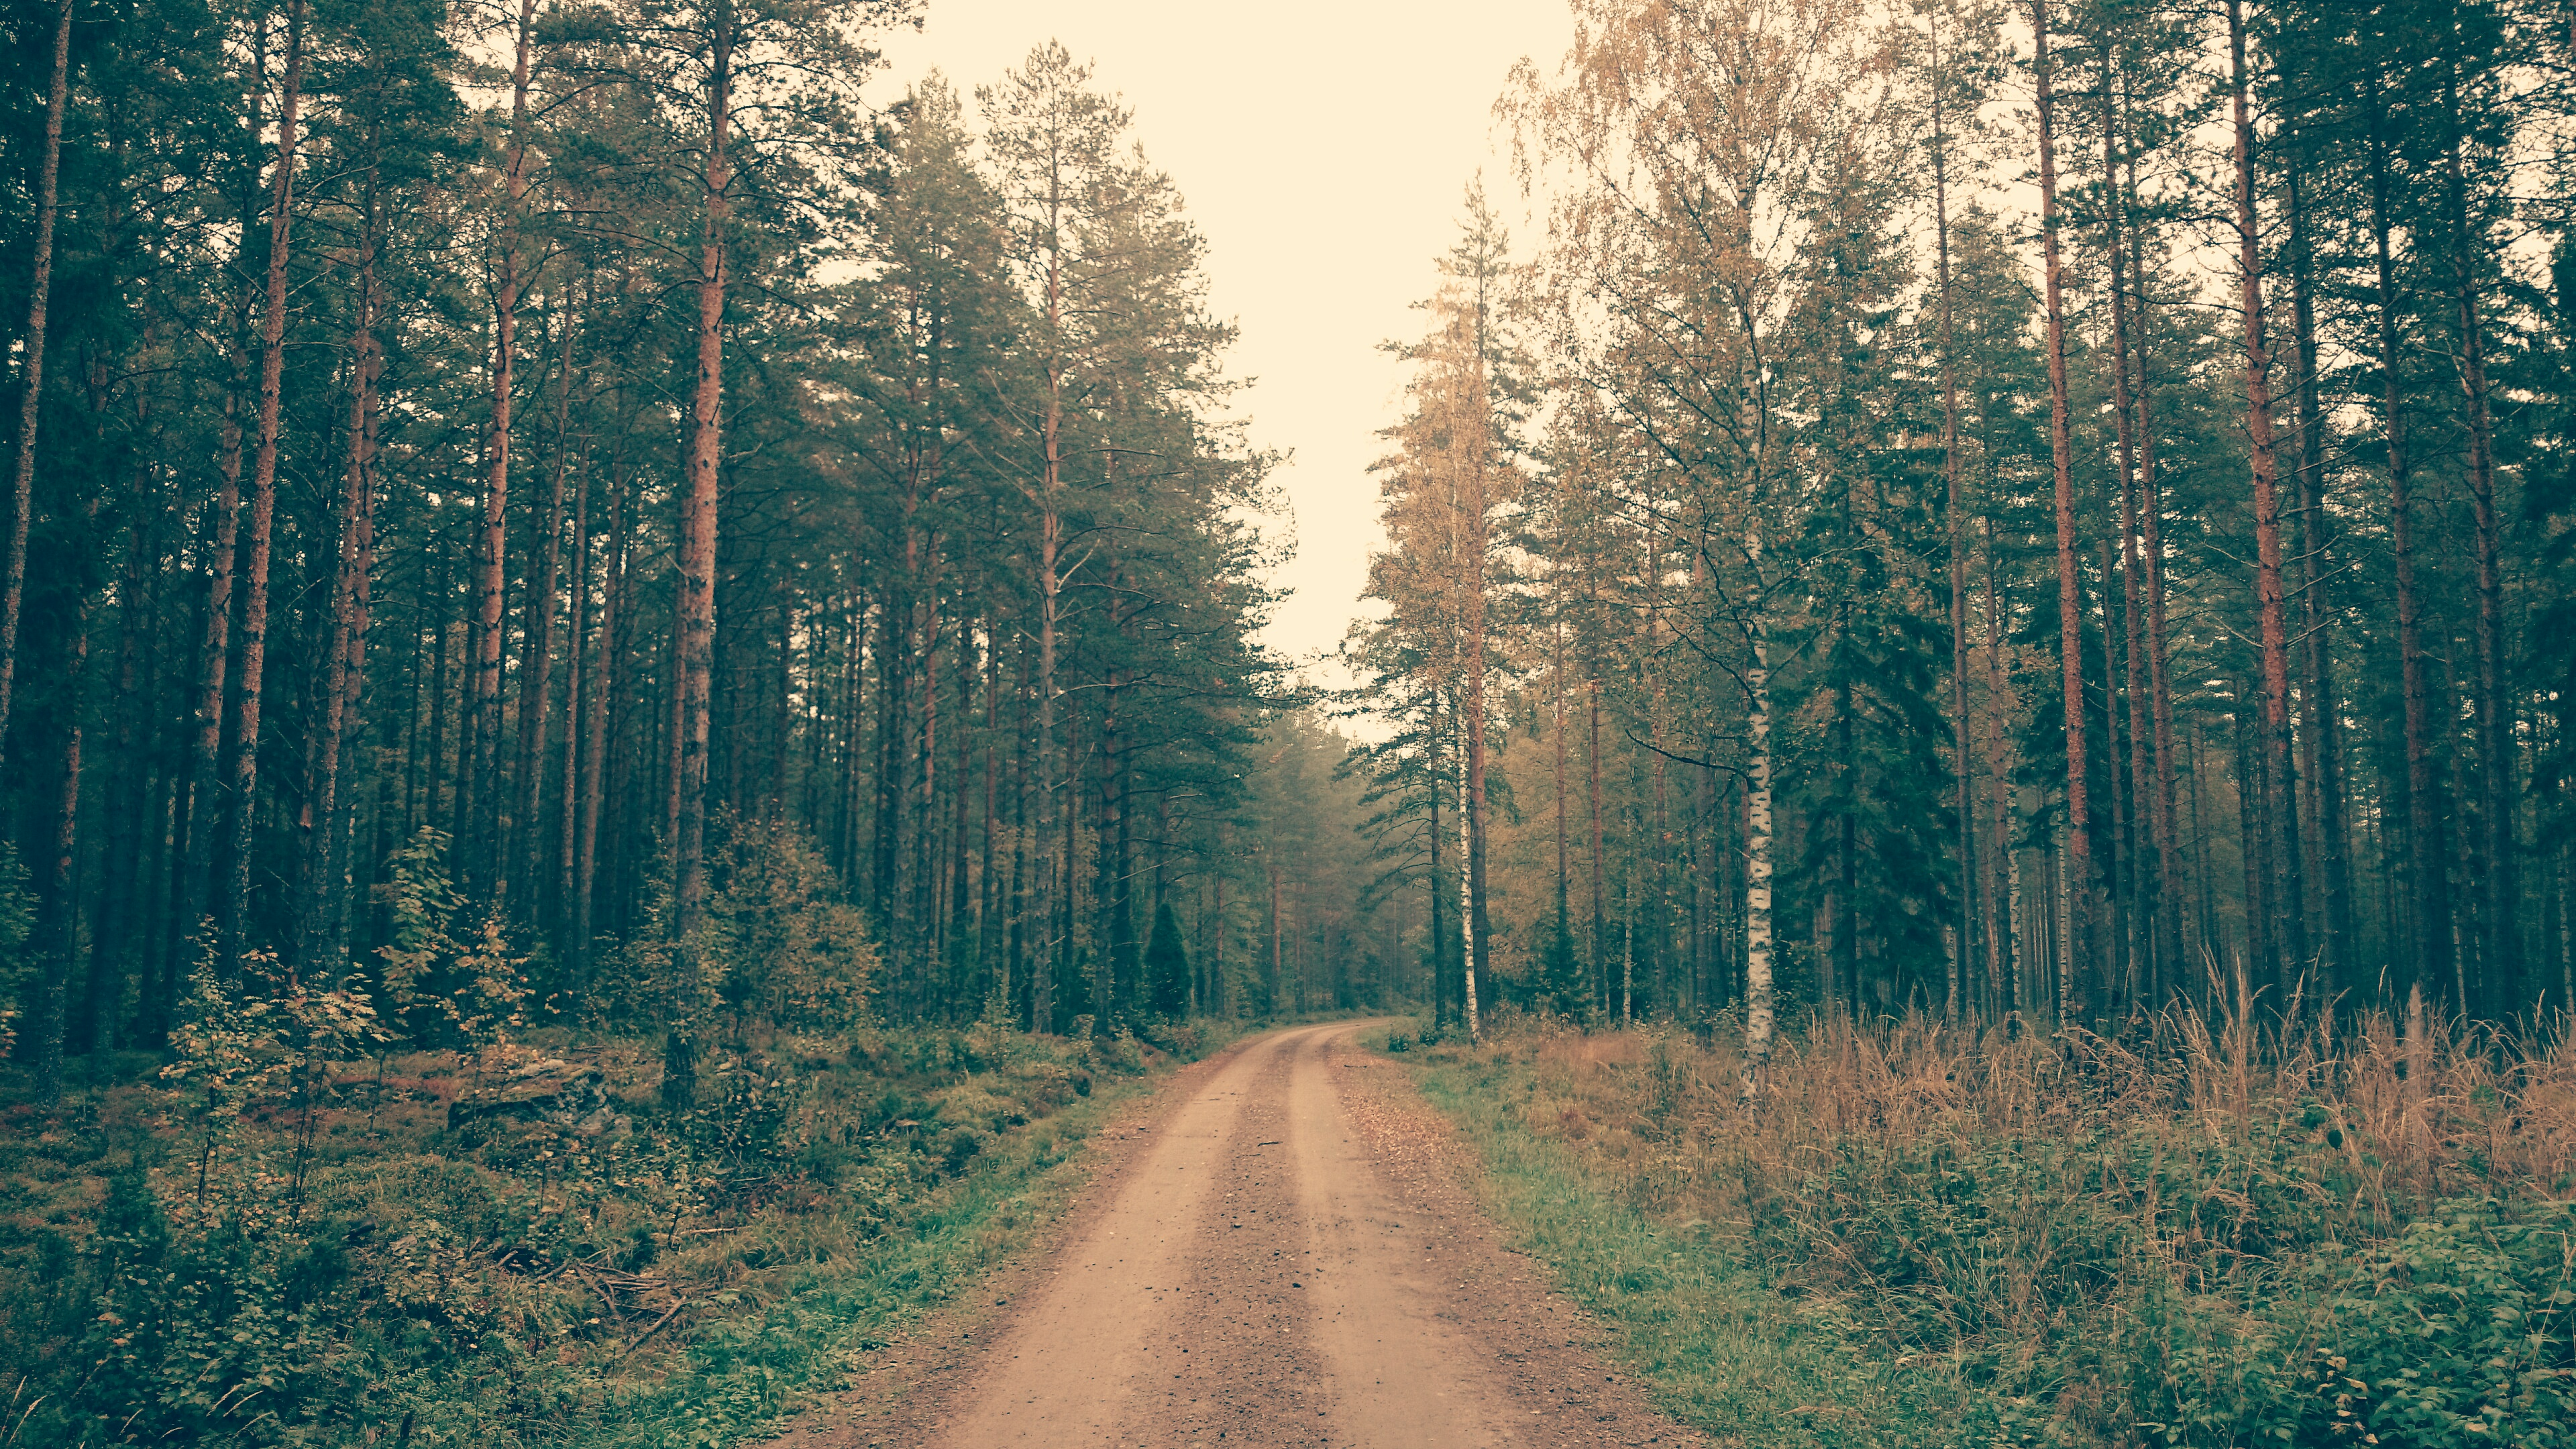 Desktop wallpaper - Brown Dirt Road Between Green Leaved Trees During Daytime